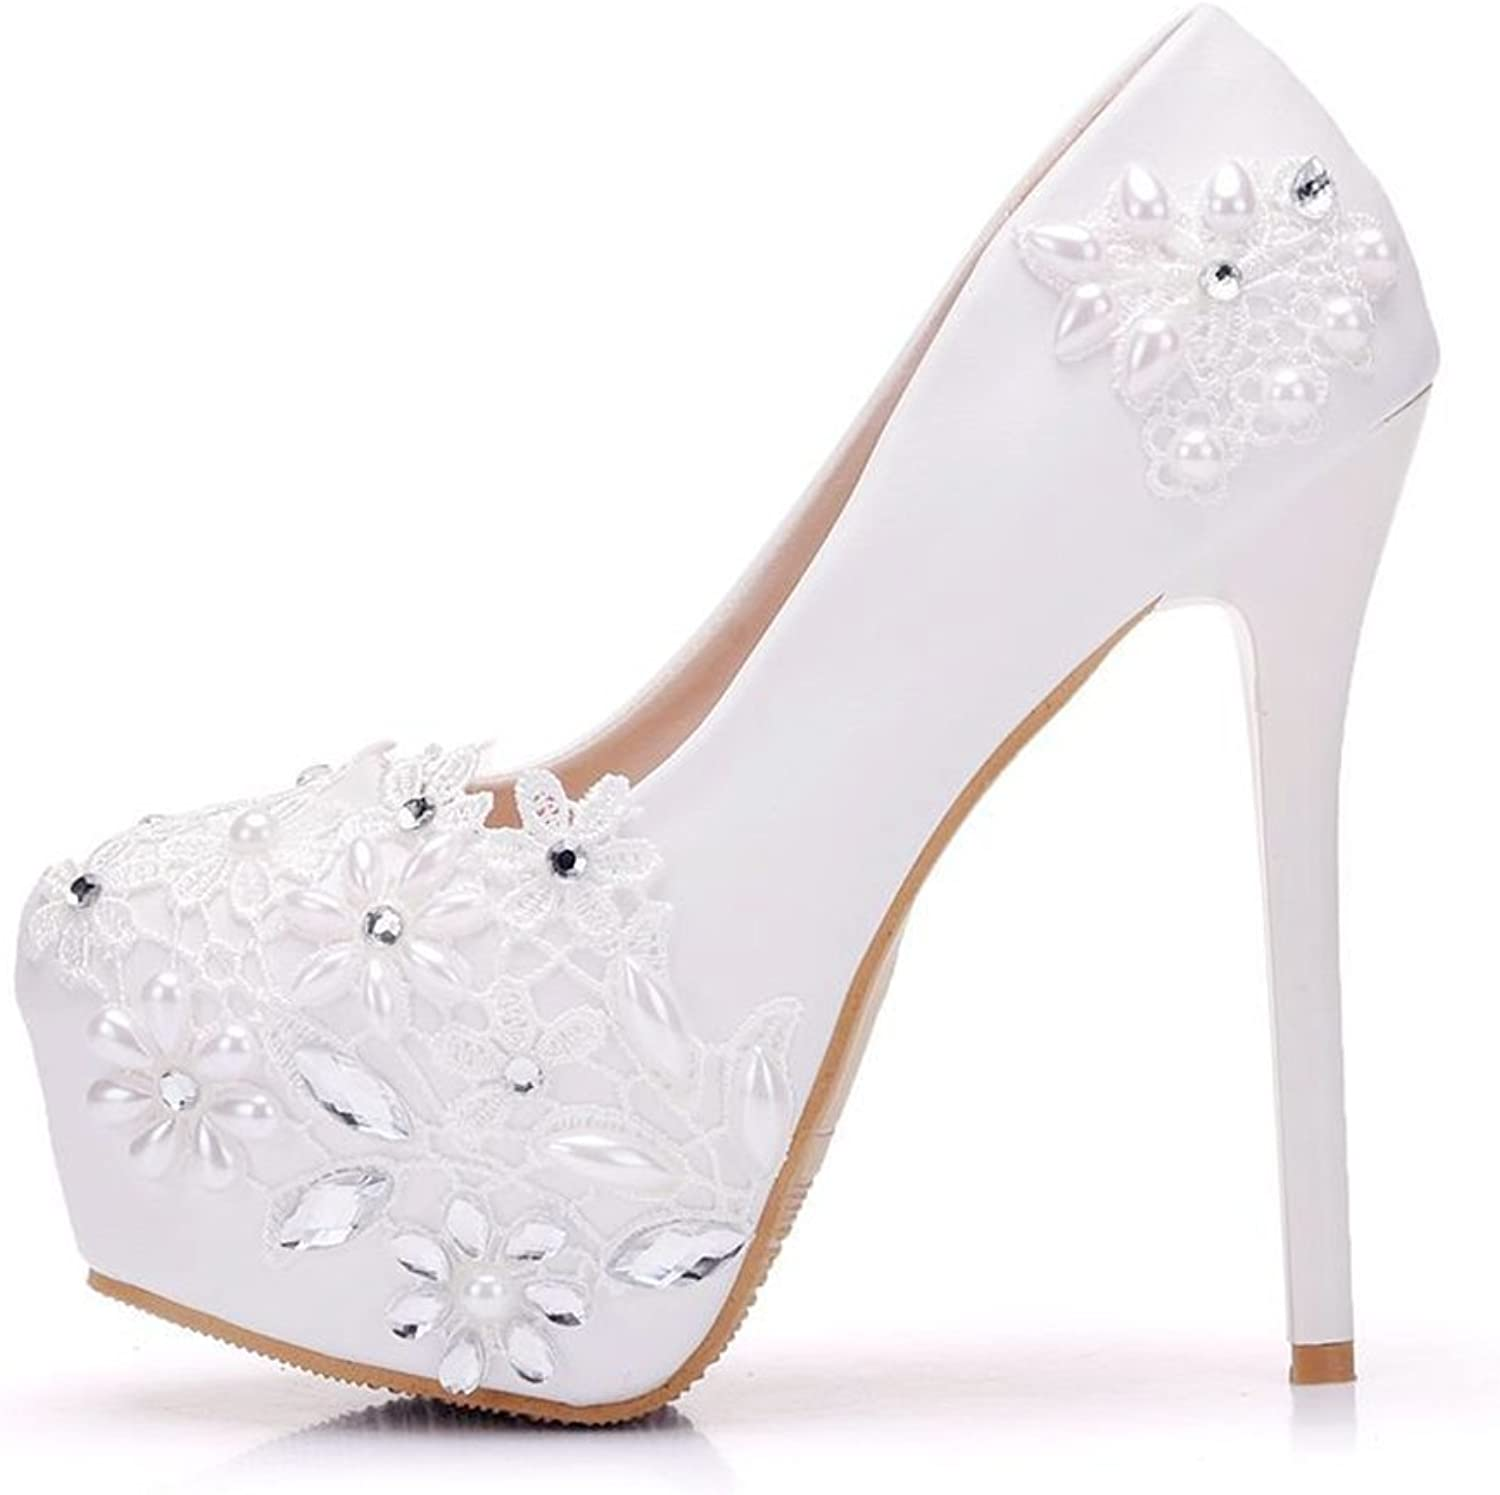 TUYPSHOES Women Pumps White Lace Wedding shoes Thin Heels Platform Round Toe High Heels for Wedding Party